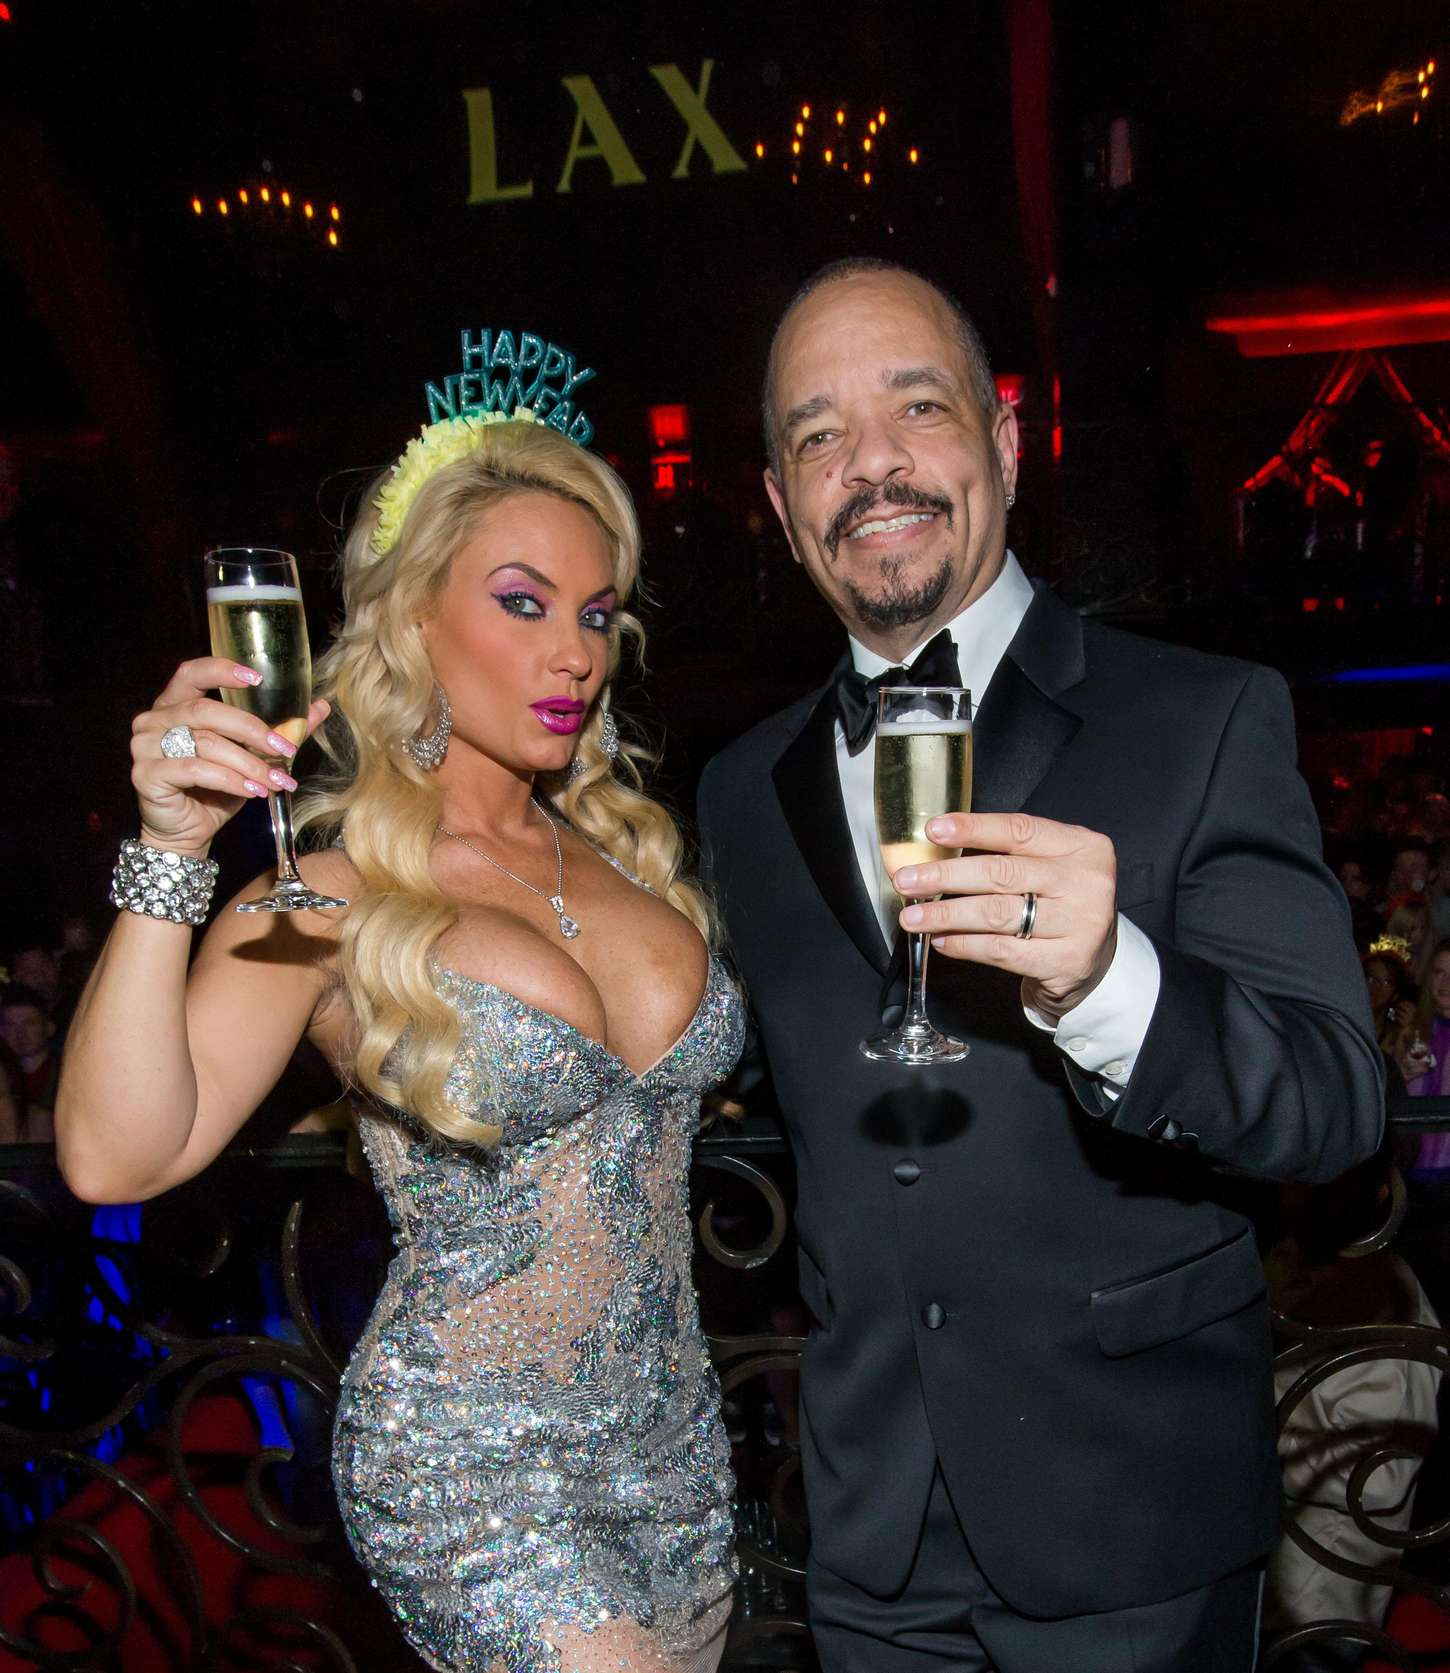 nicole-coco-austin-new-years-eve-party-at-lax-nightclub-14 - Full Size